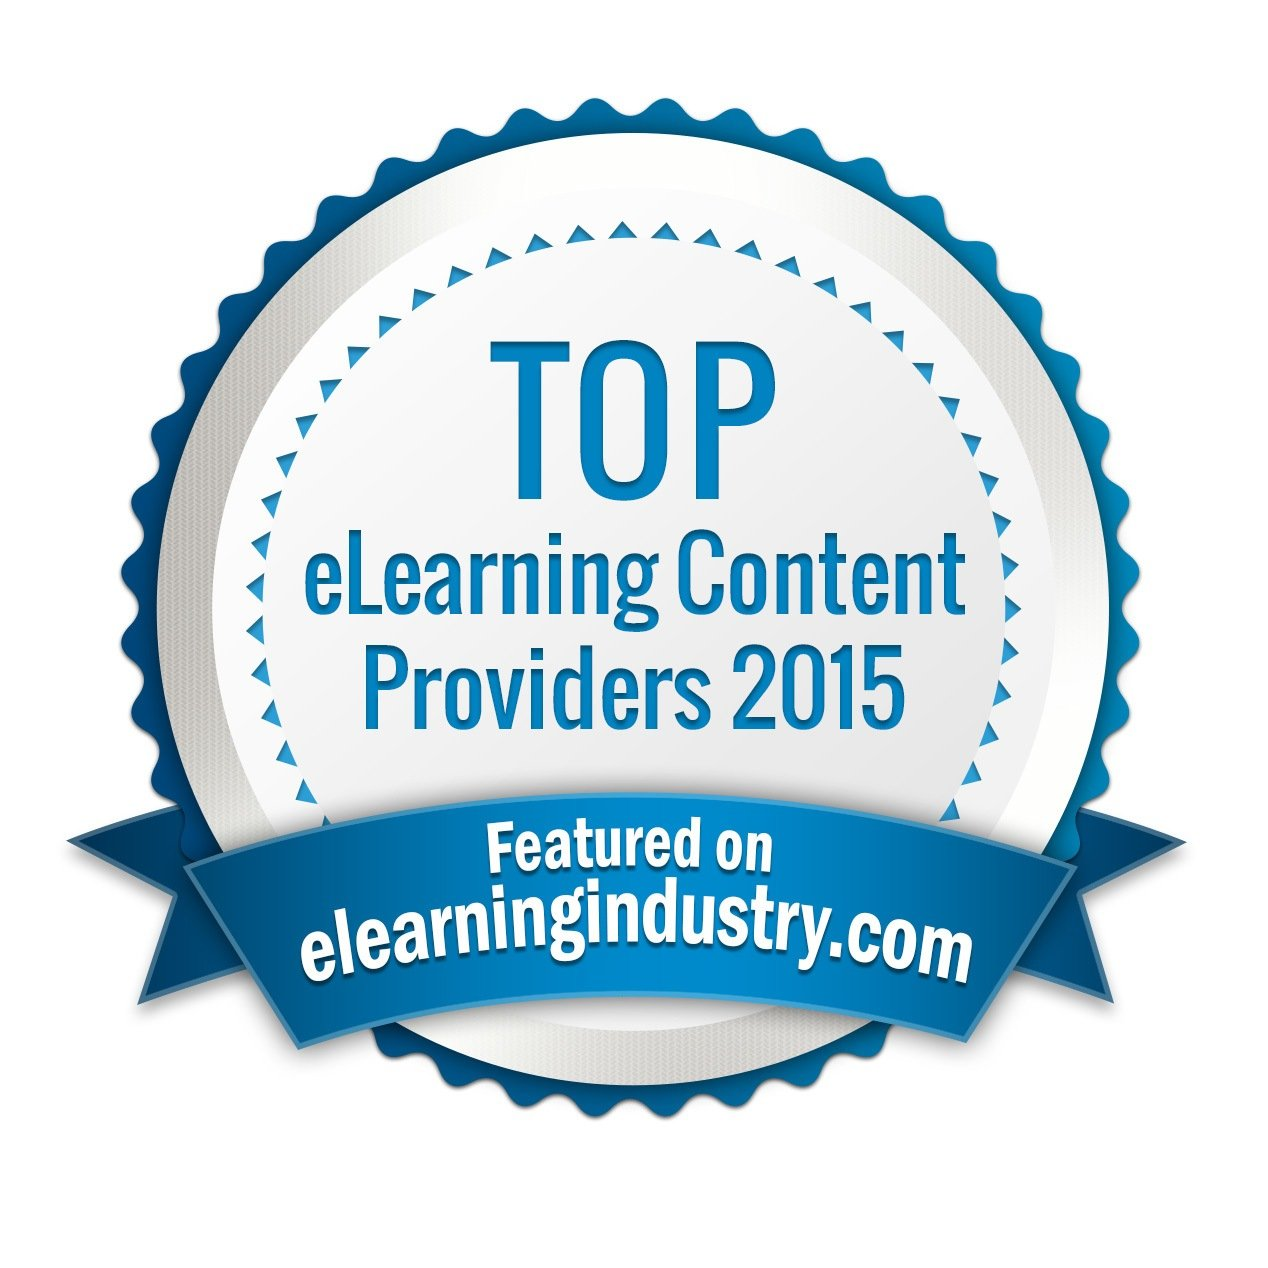 Top eLearning Content Development Companies For 2015